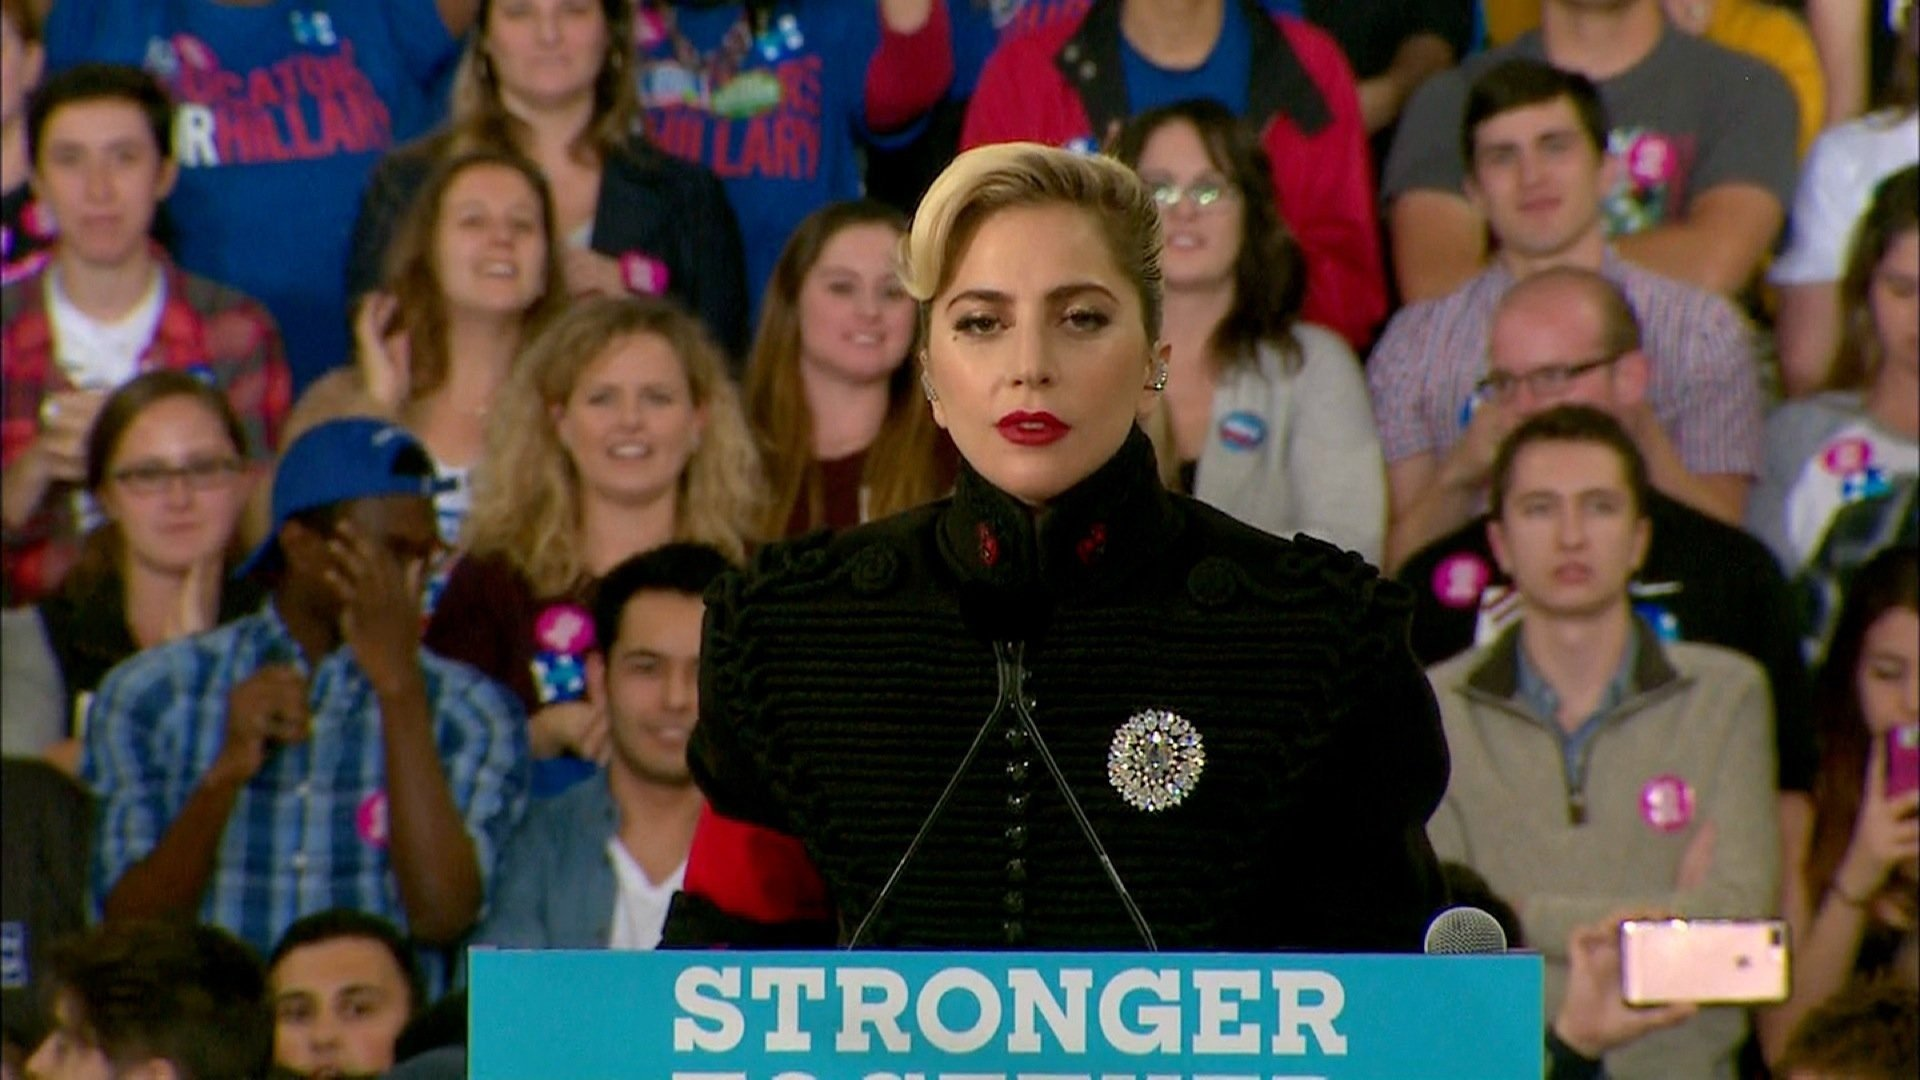 If you thought Lady Gaga's outfit at Hillary Clinton's rally Monday night looked familiar you're right. Gaga took the stage in North Carolina at Clinton's final campaign event and fans were quick to point out that the singer's jacket looked a lot like